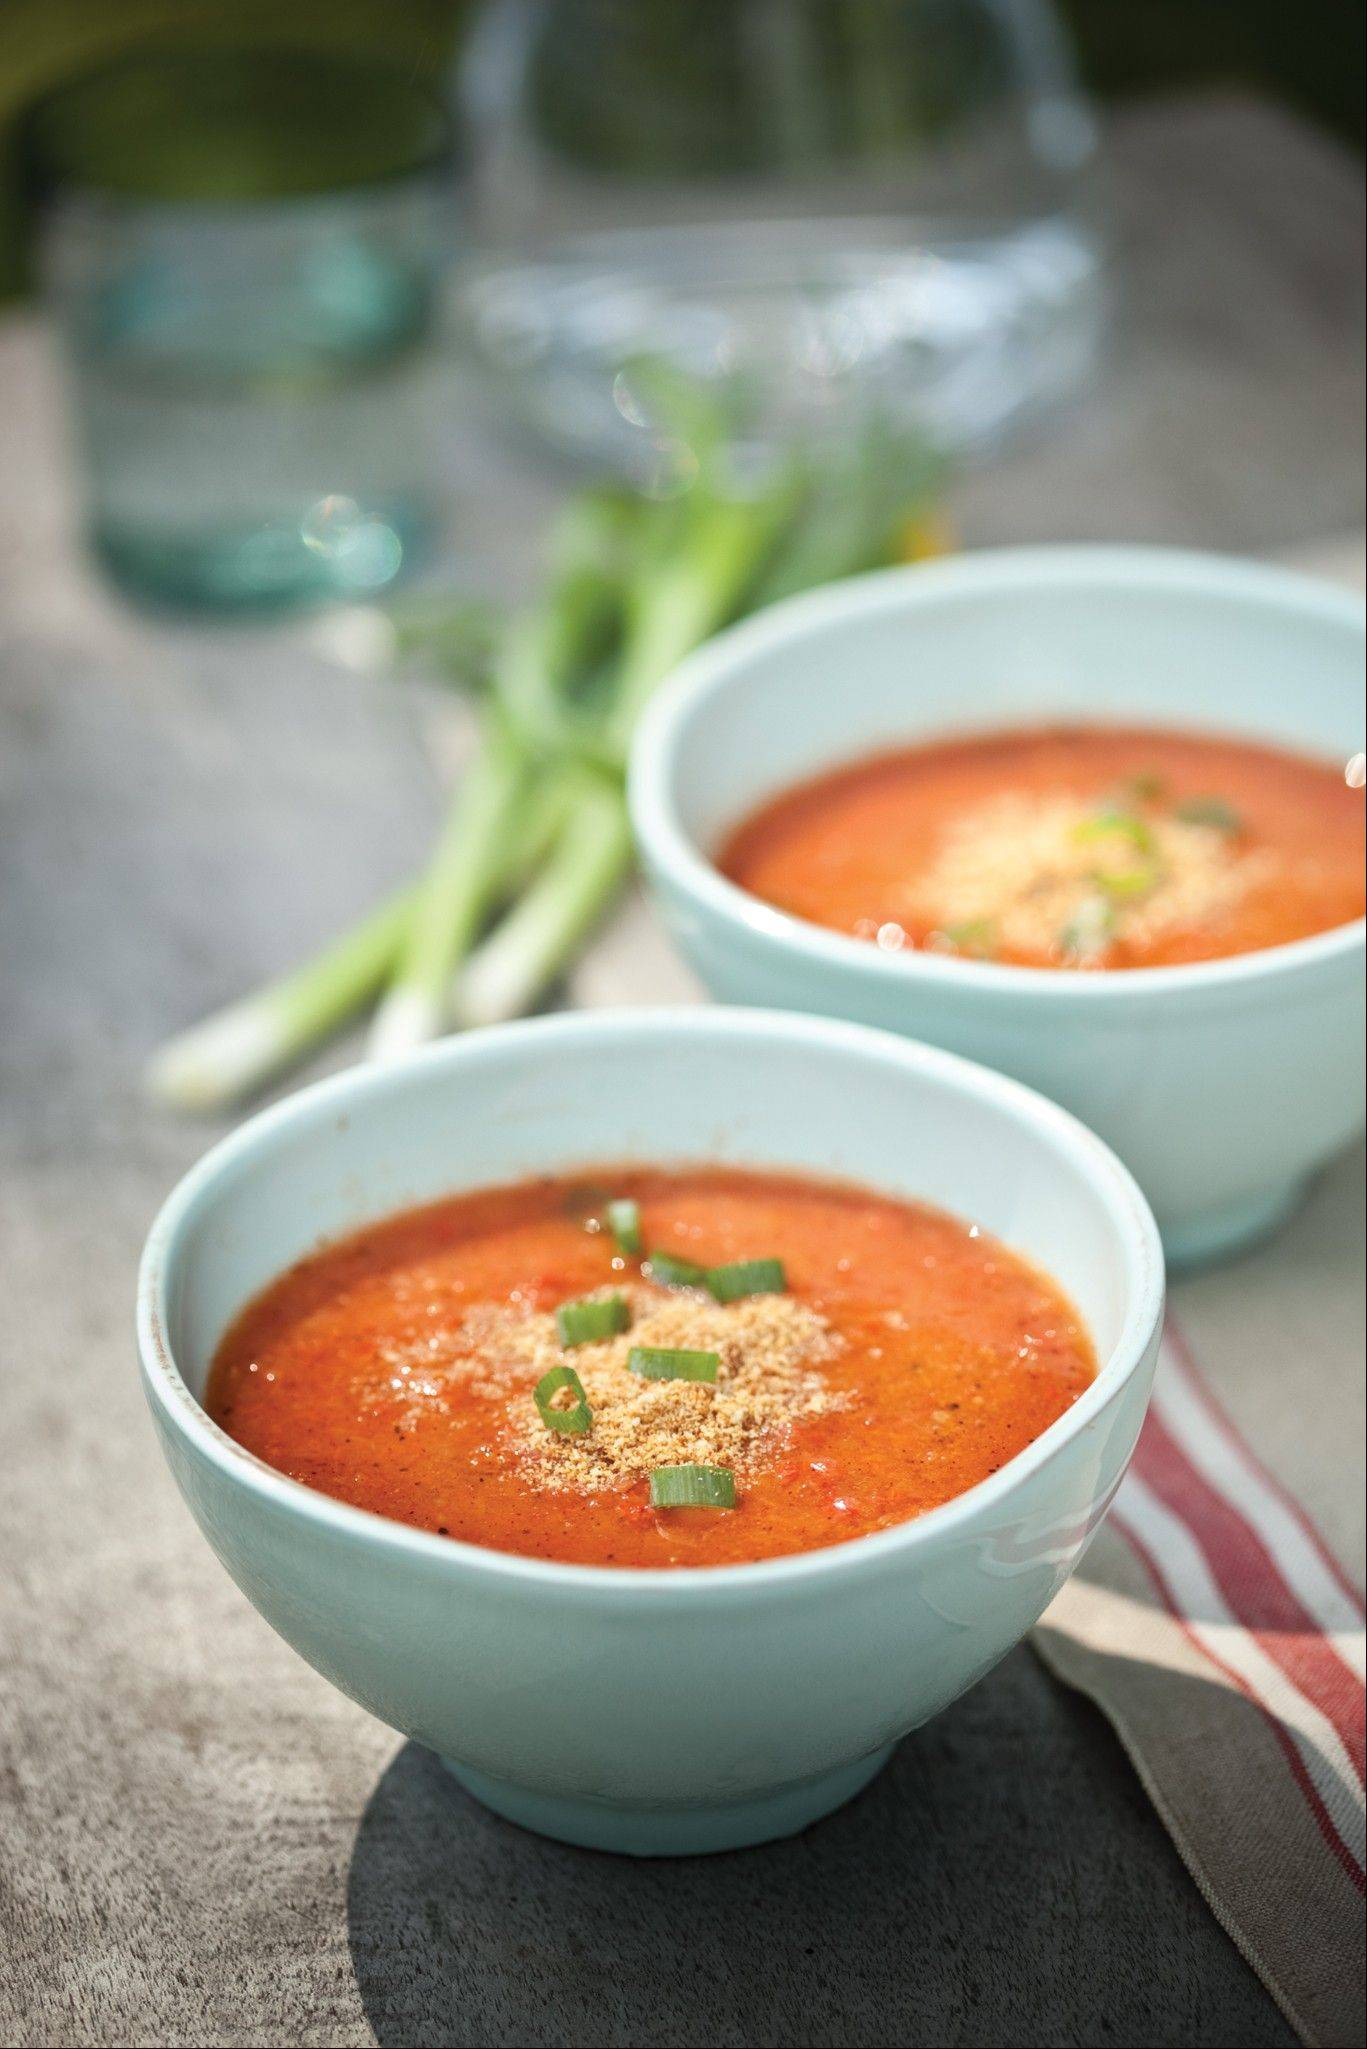 This summery Grilled Gazpacho and more grilled vegetable recipes on Page 8.